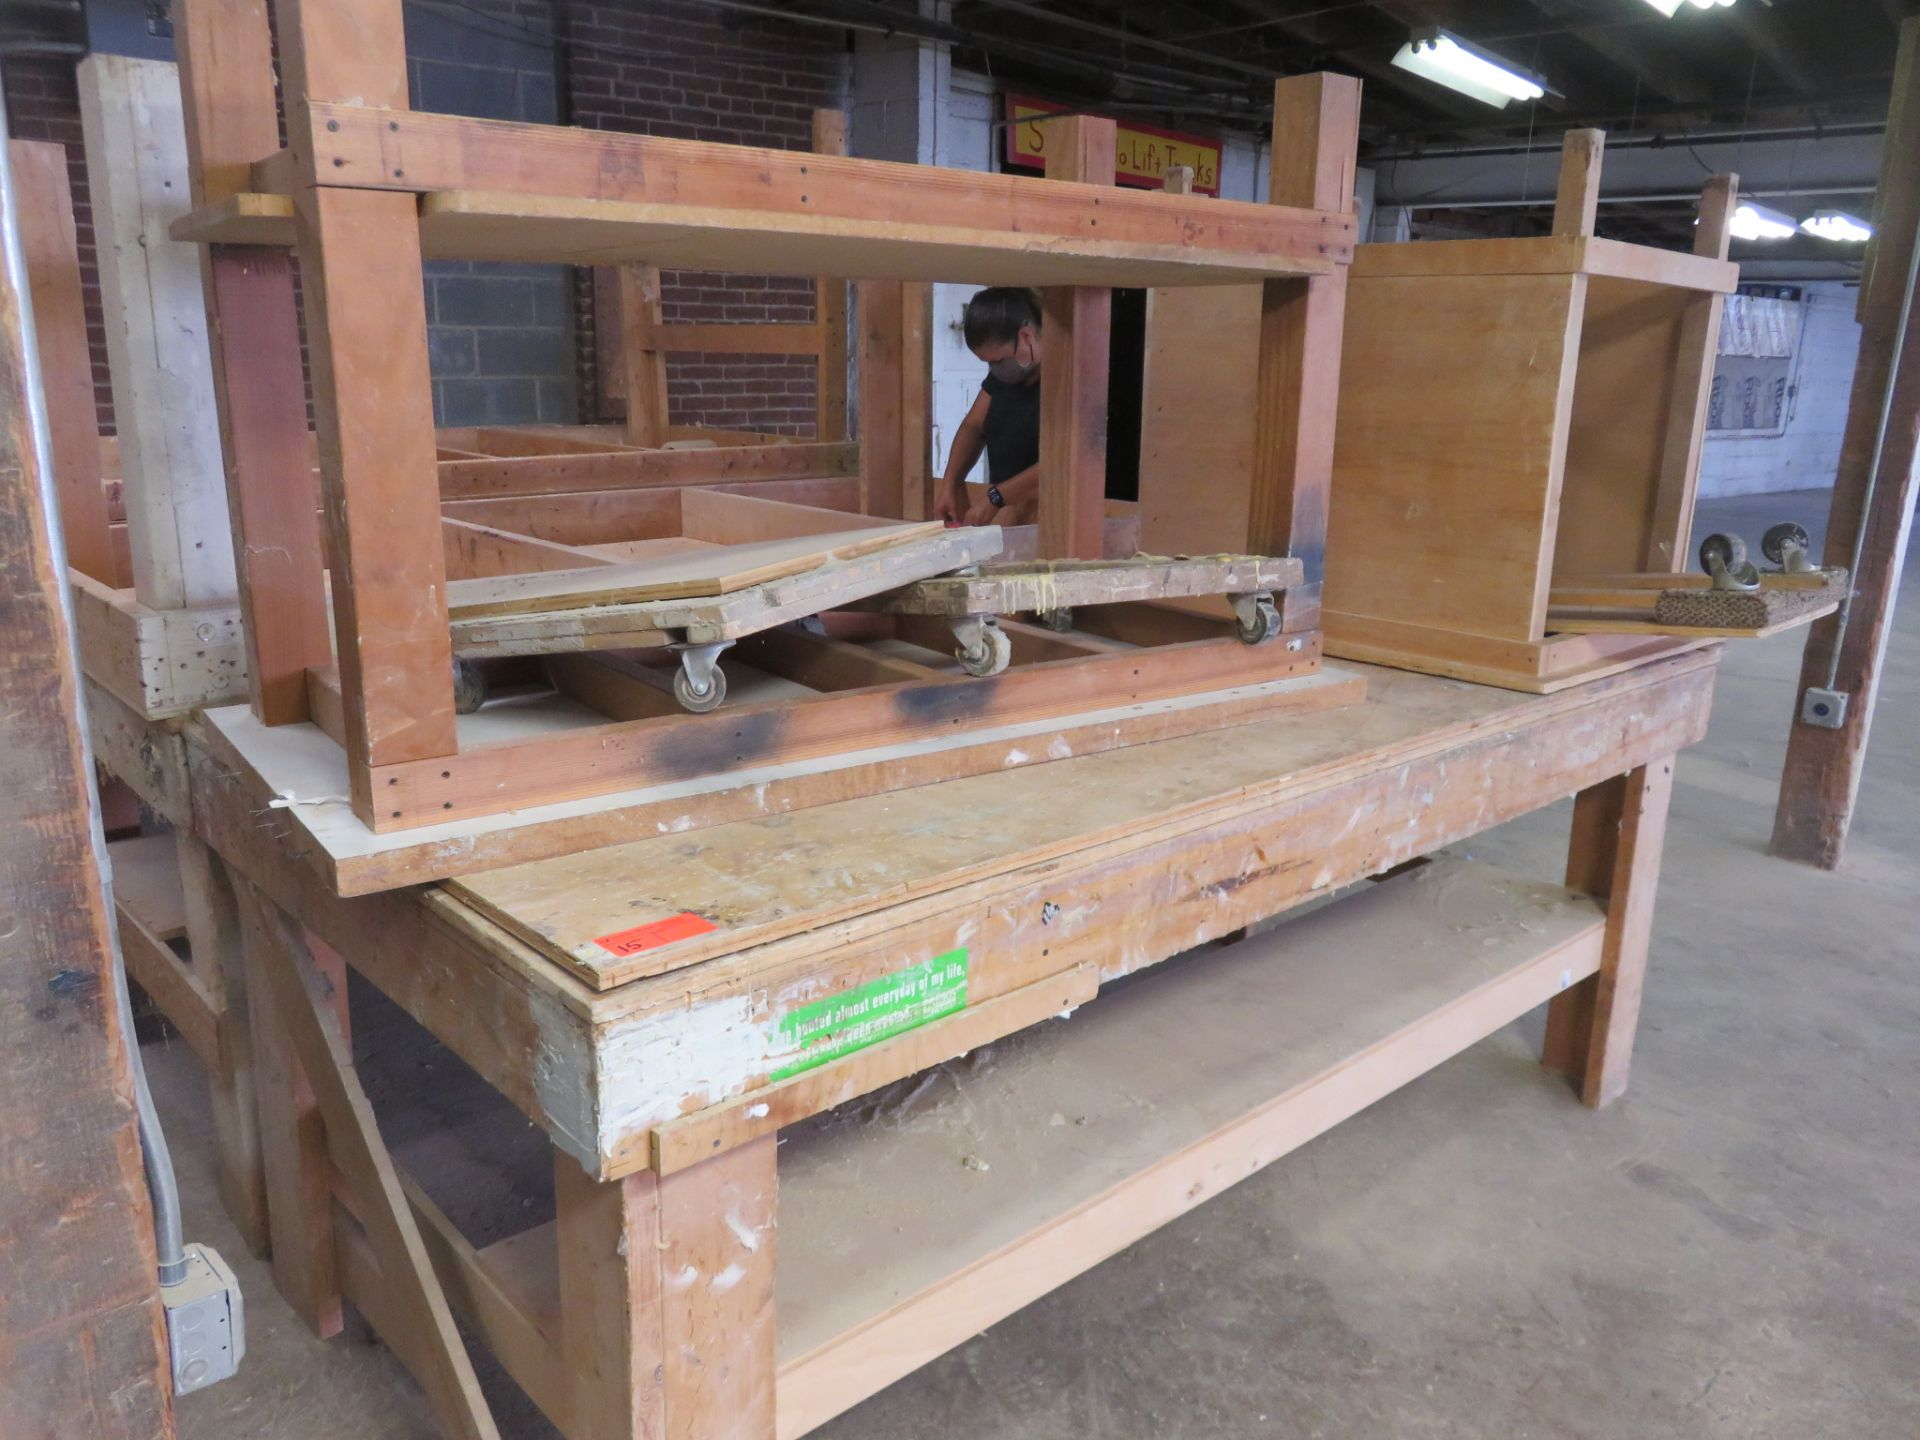 "Heavy Duty Wooden Work Tables Lot of 3 approx 96""x 48""x 36, 38""x 32""x 34"" 60""x 28""x 36"" - Image 3 of 4"